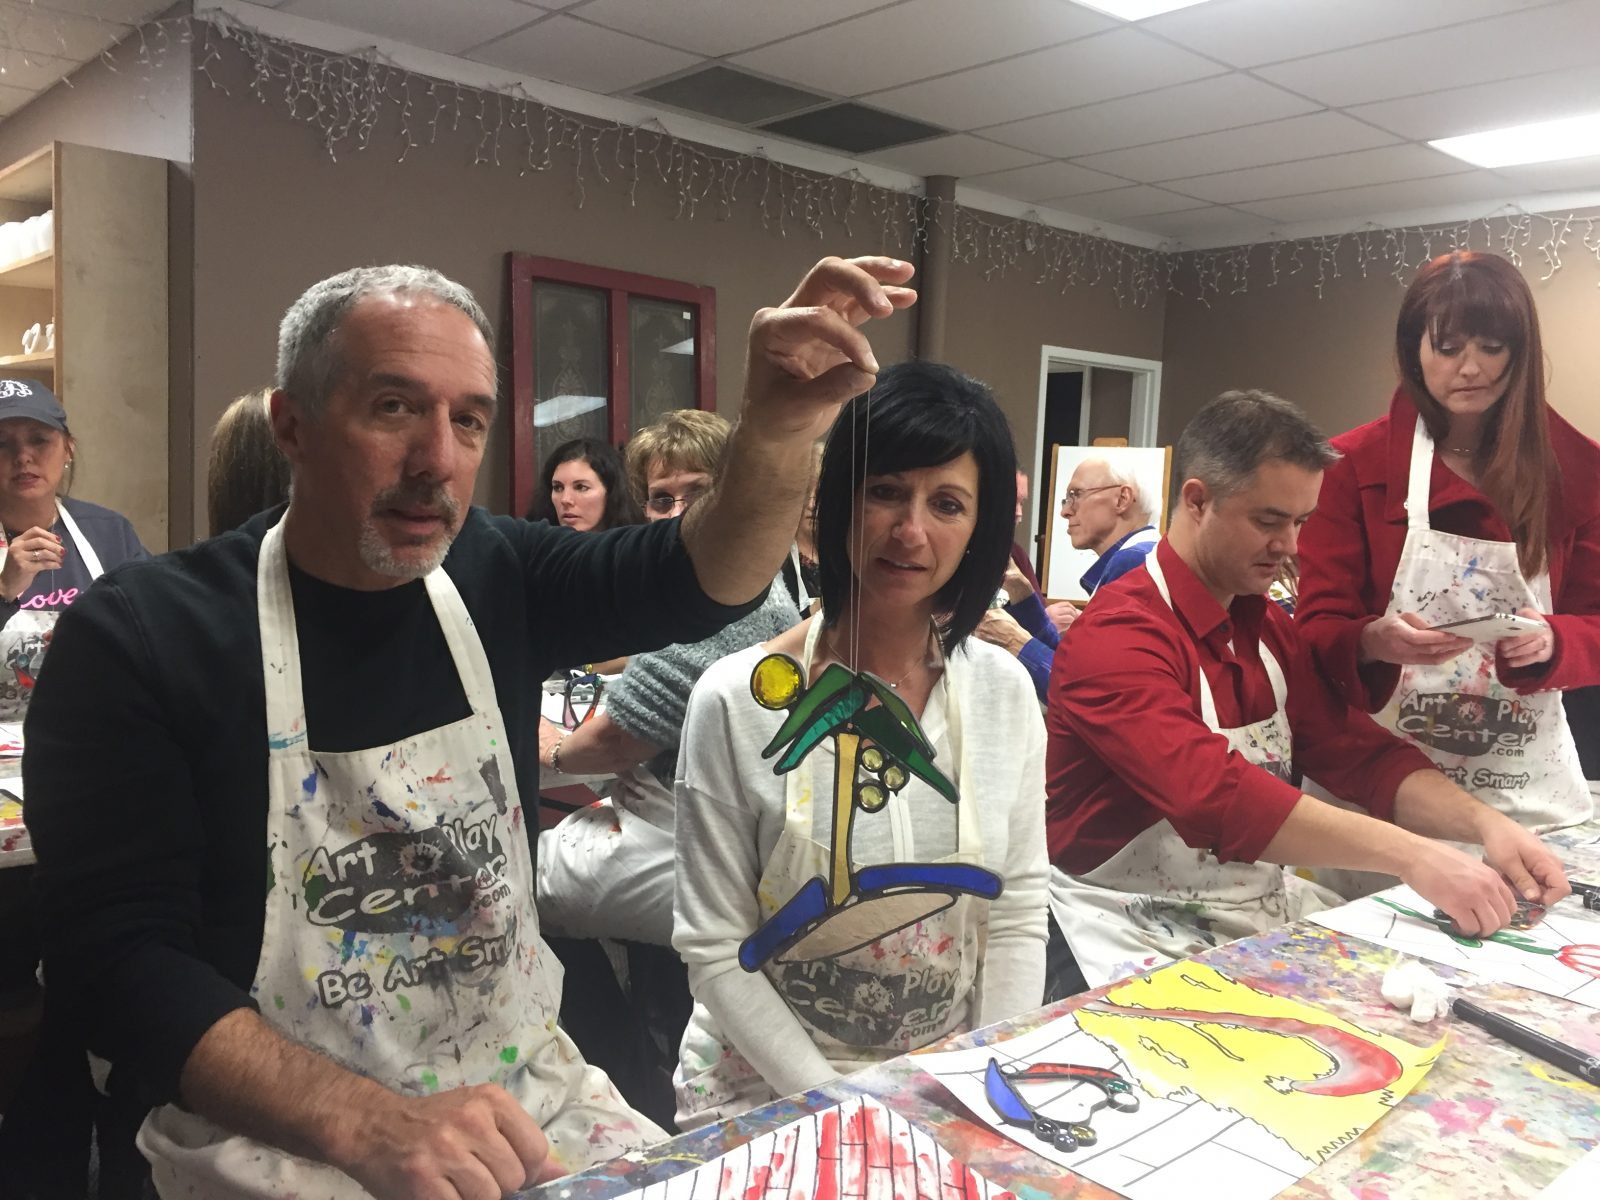 Team Art Glass Experience painting and stained glass